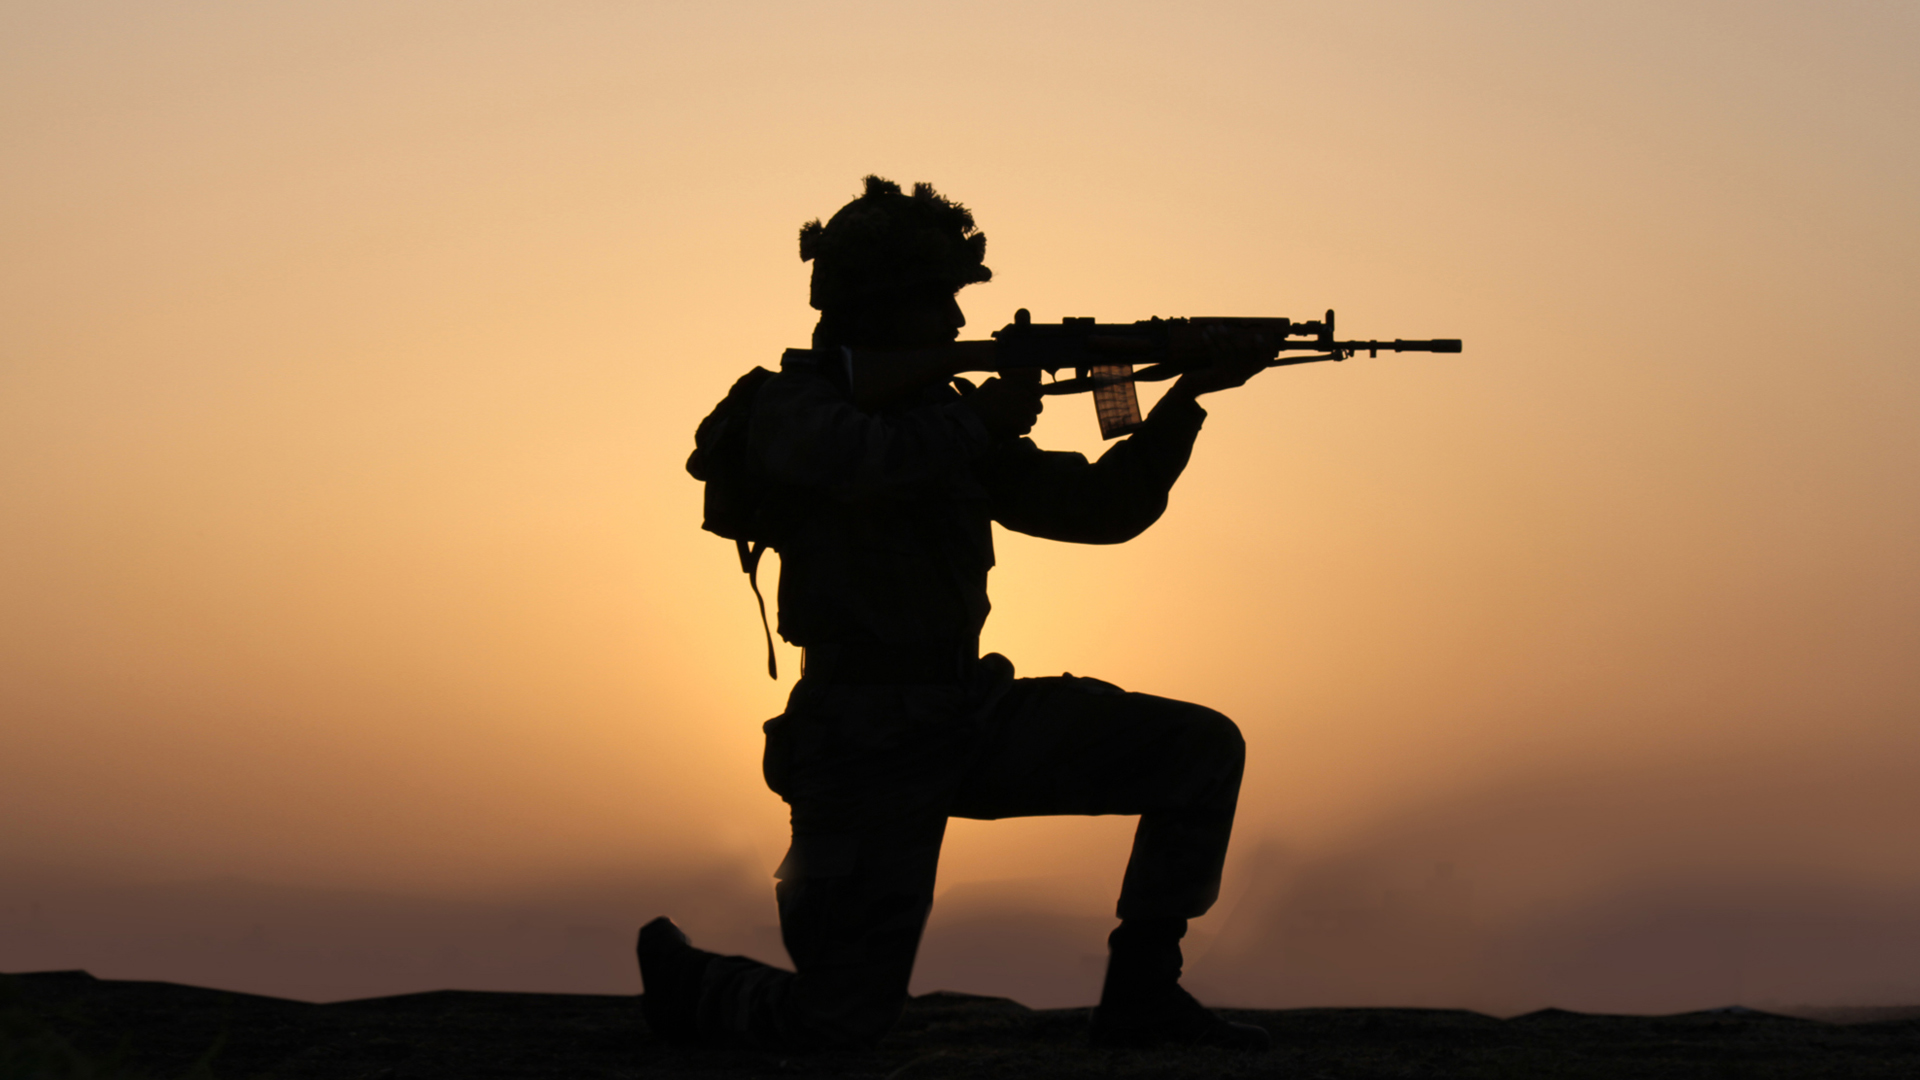 indian army wallpaper with soldier in silhouette hd